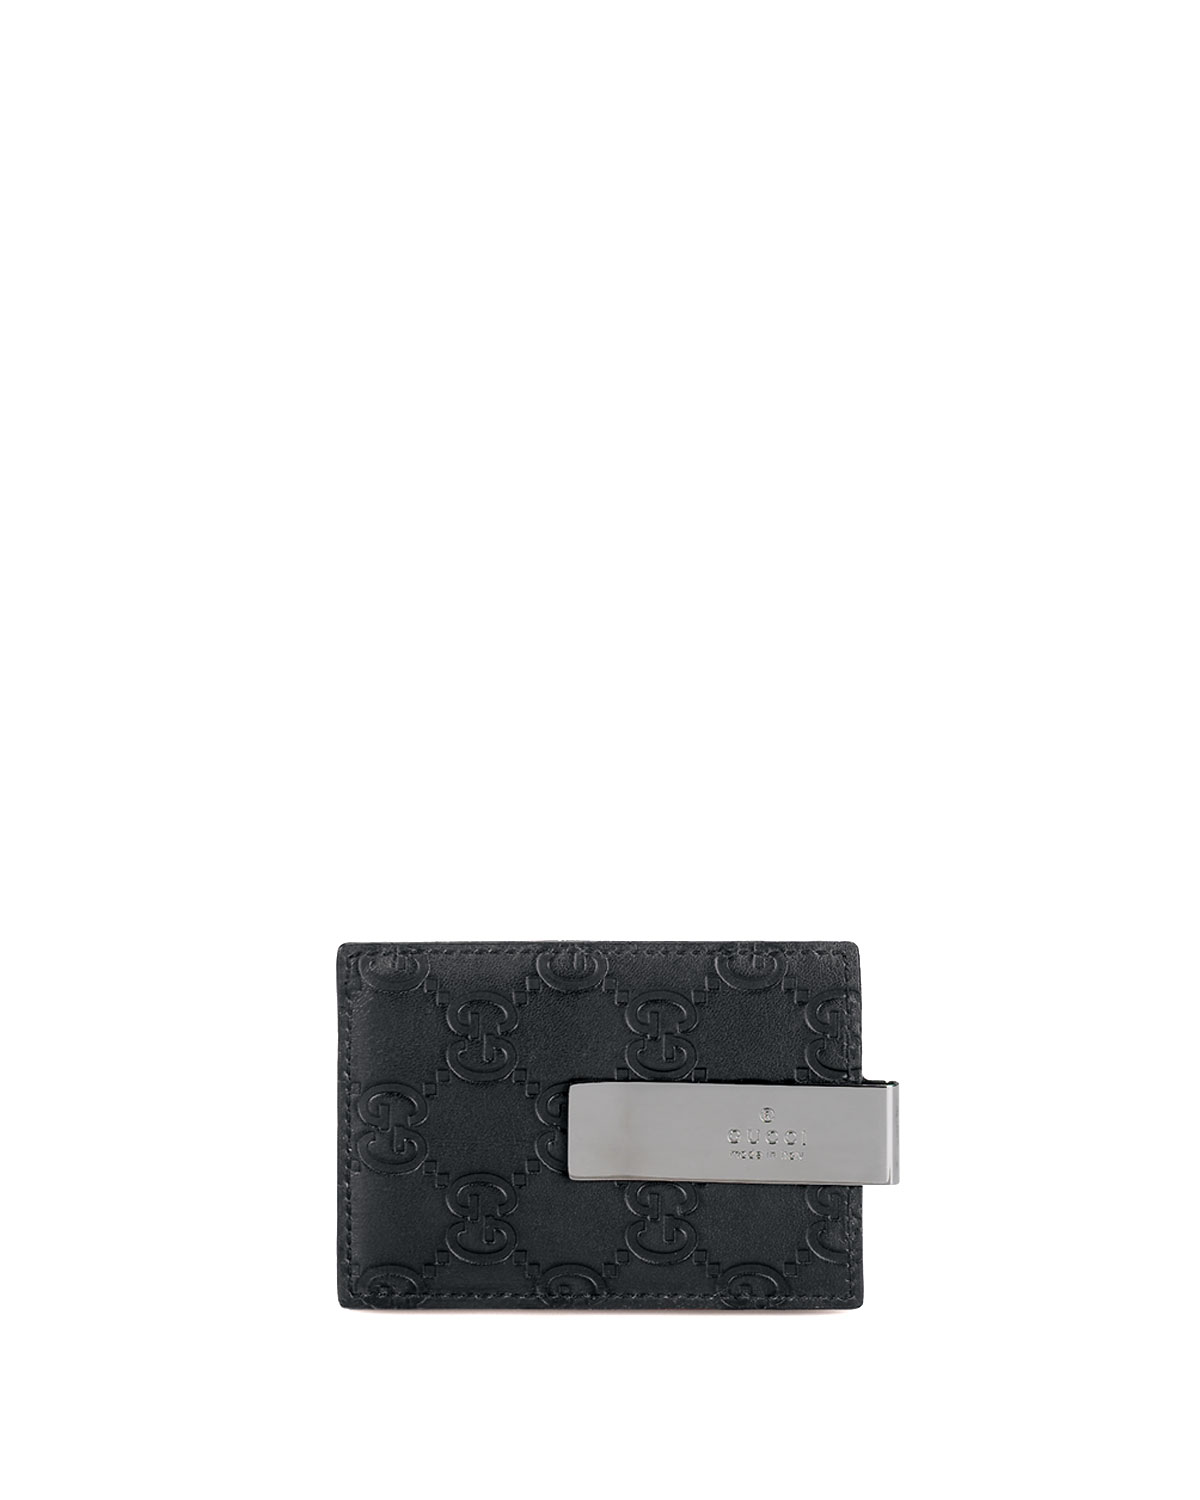 72e1119aac244 Gucci GUCCISSIMA MONEY CLIP